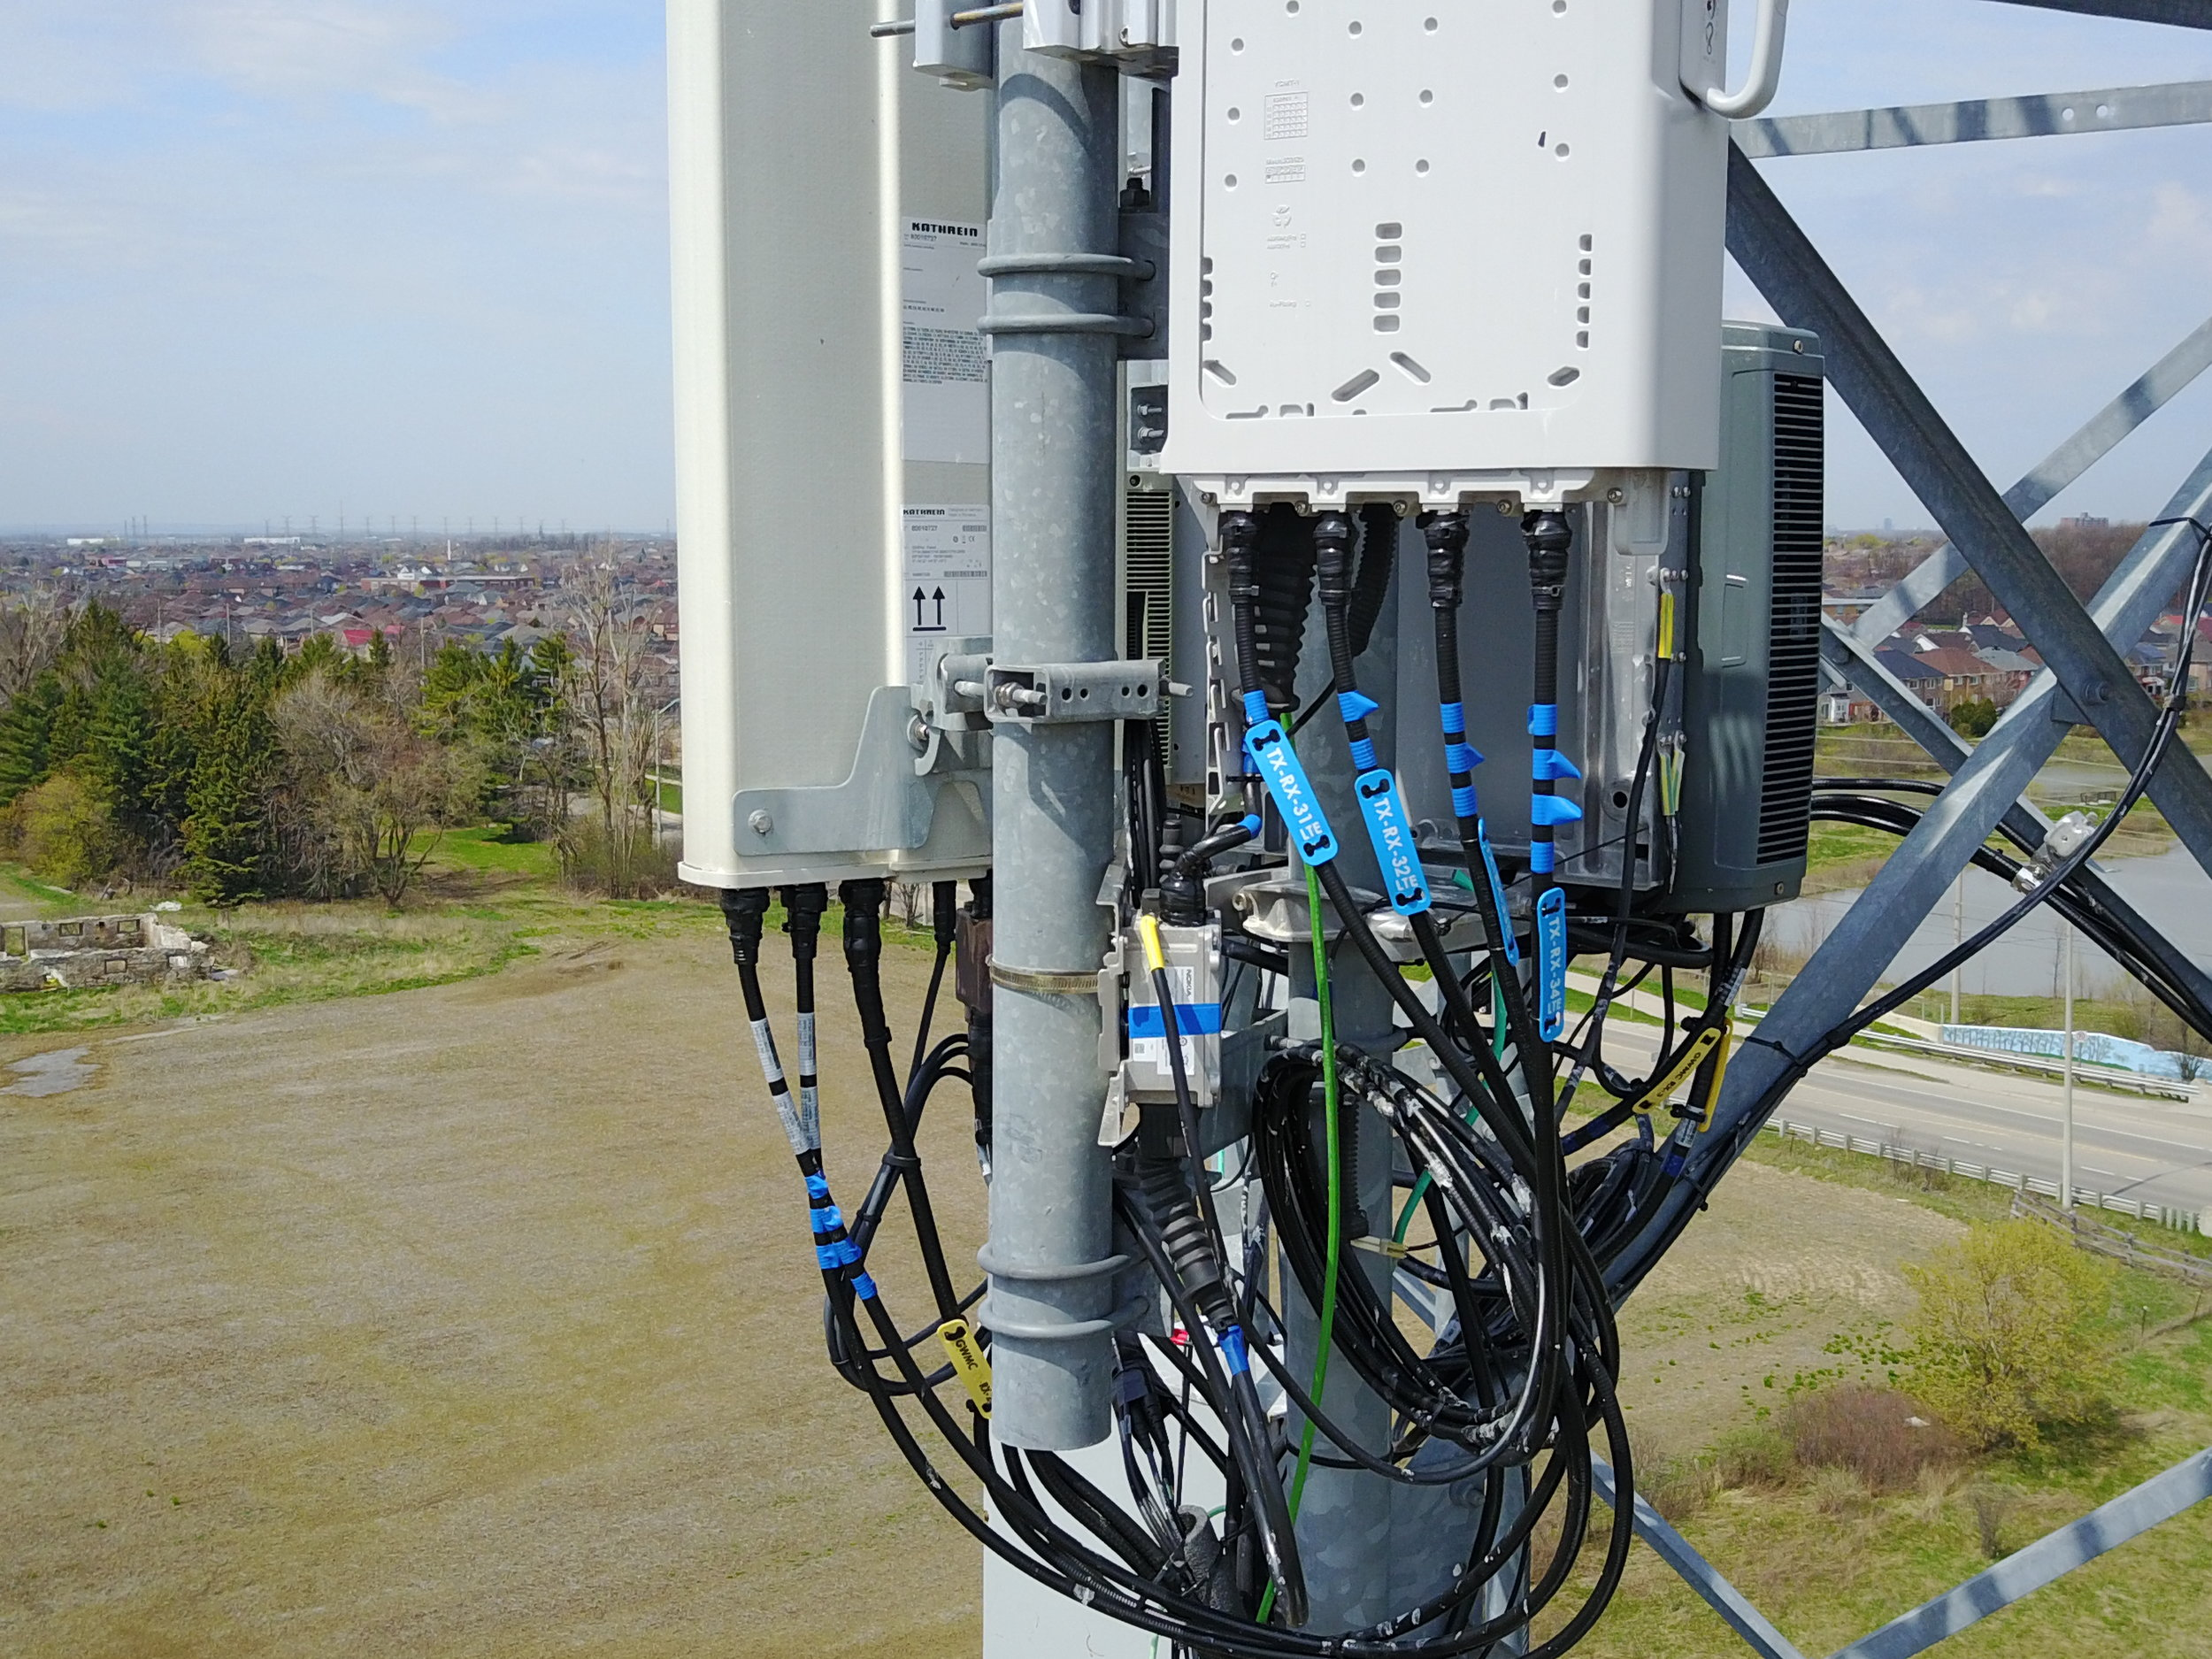 Asset Management / Infrastructure - A major telecomm tower manufacturer needed another perspective for generating reports of their tower conditions as well as the equipment mounted to them. We were able to generate a more accurate report with HD imagery in significantly less time than traditional inspection methods, while mitigating safety concerns.